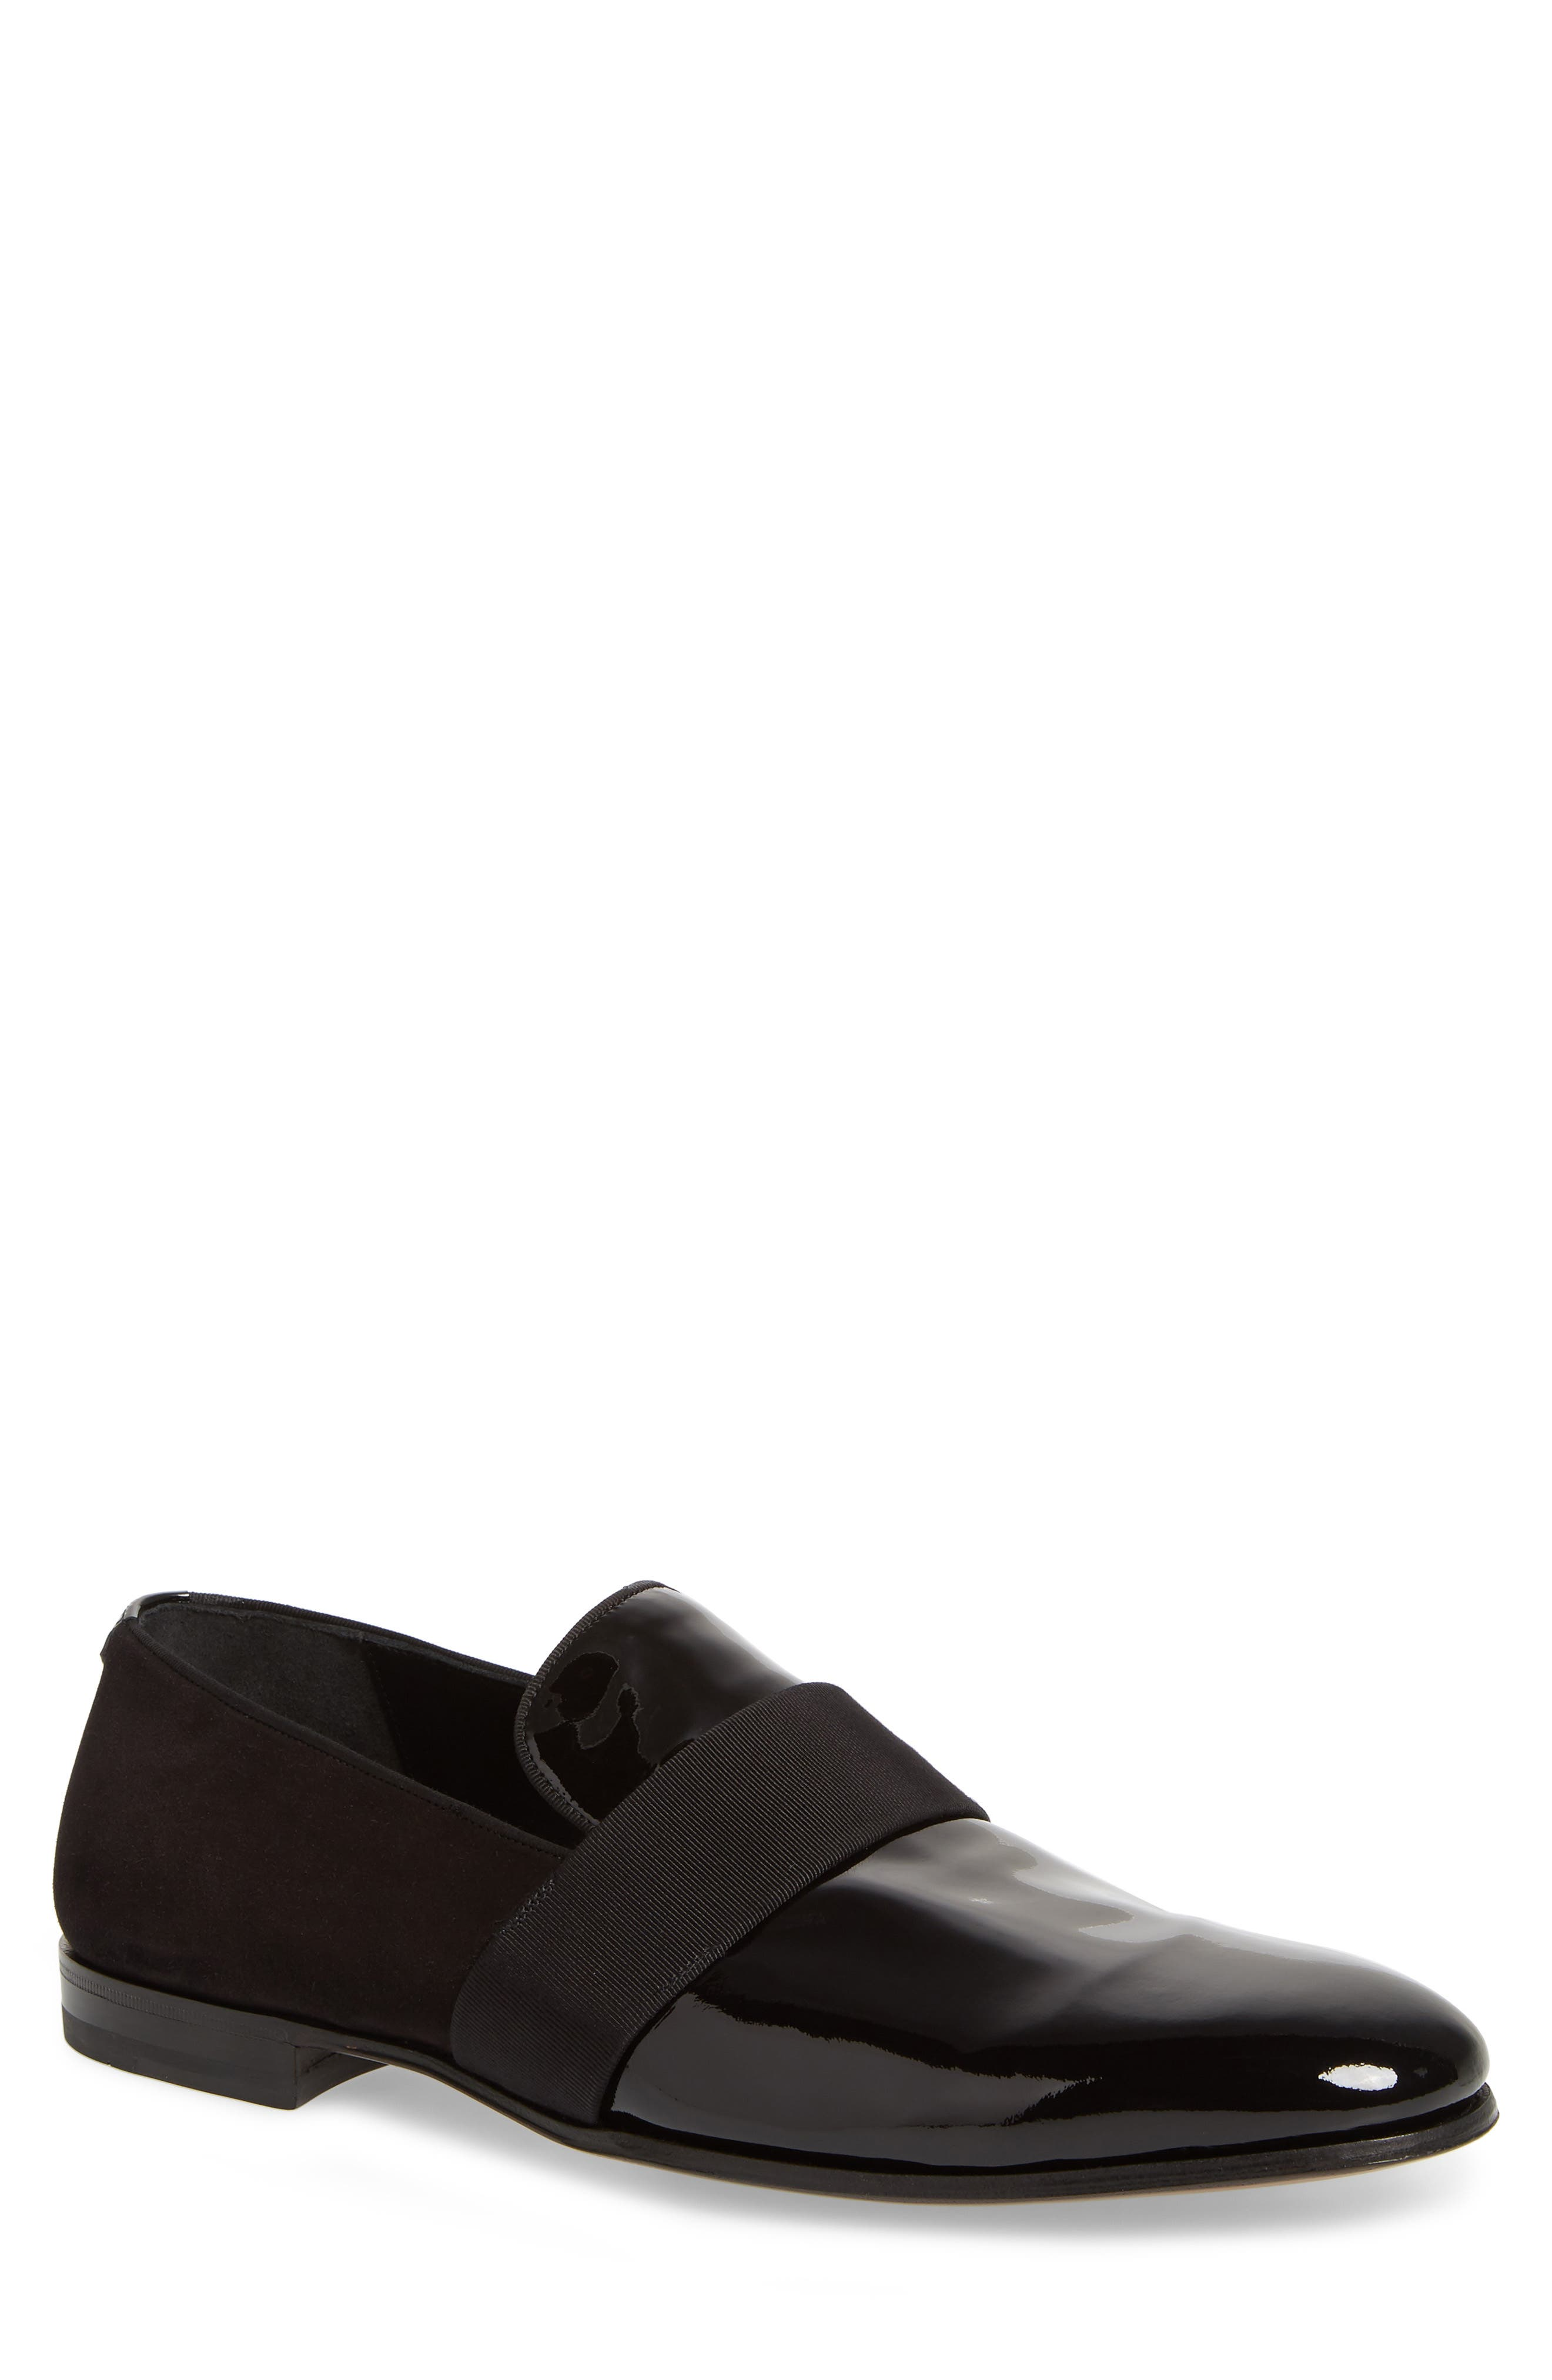 SALVATORE FERRAGAMO Bryden Banded Loafer, Main, color, NERO